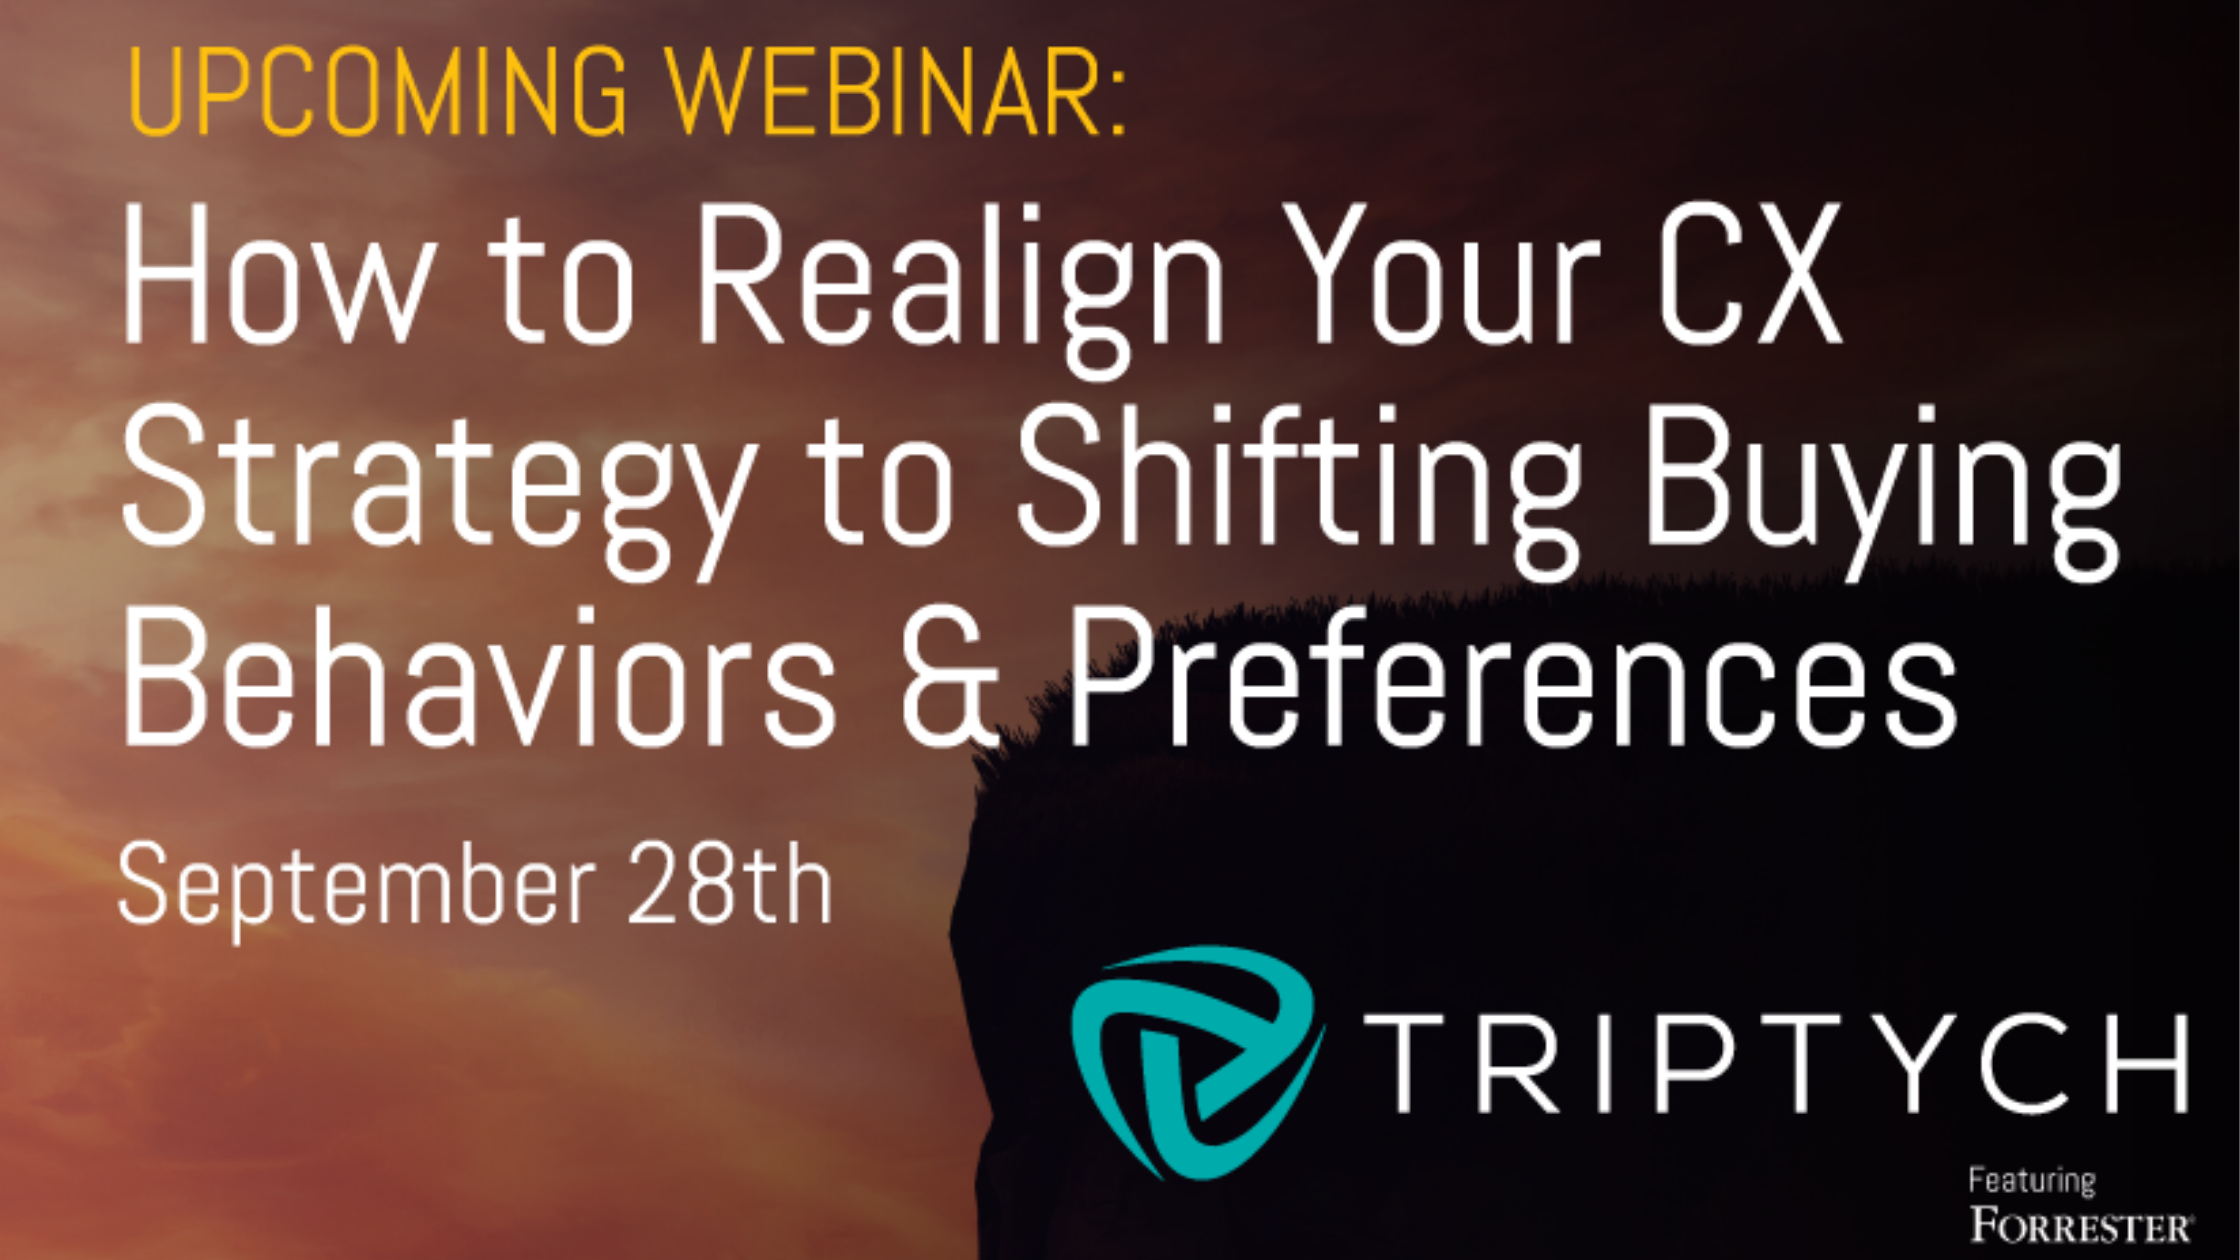 Q&A: Upcoming Webinar - 'How to Realign Your CX Strategy to Shifting Buying Behaviors & Preferences'